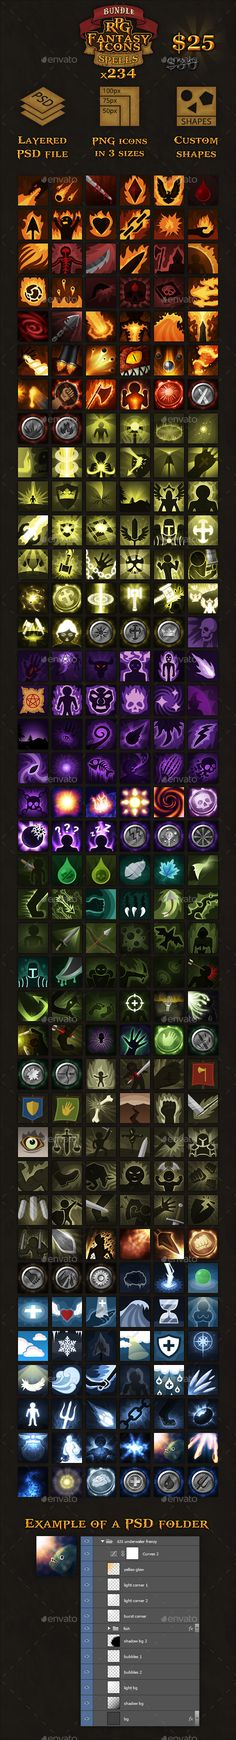 234 RPG Fantasy Spells Icons Bundle — Photoshop PSD #mmo #100x100 • Download ➝ https://graphicriver.net/item/234-rpg-fantasy-spells-icons-bundle/8392138?ref=pxcr